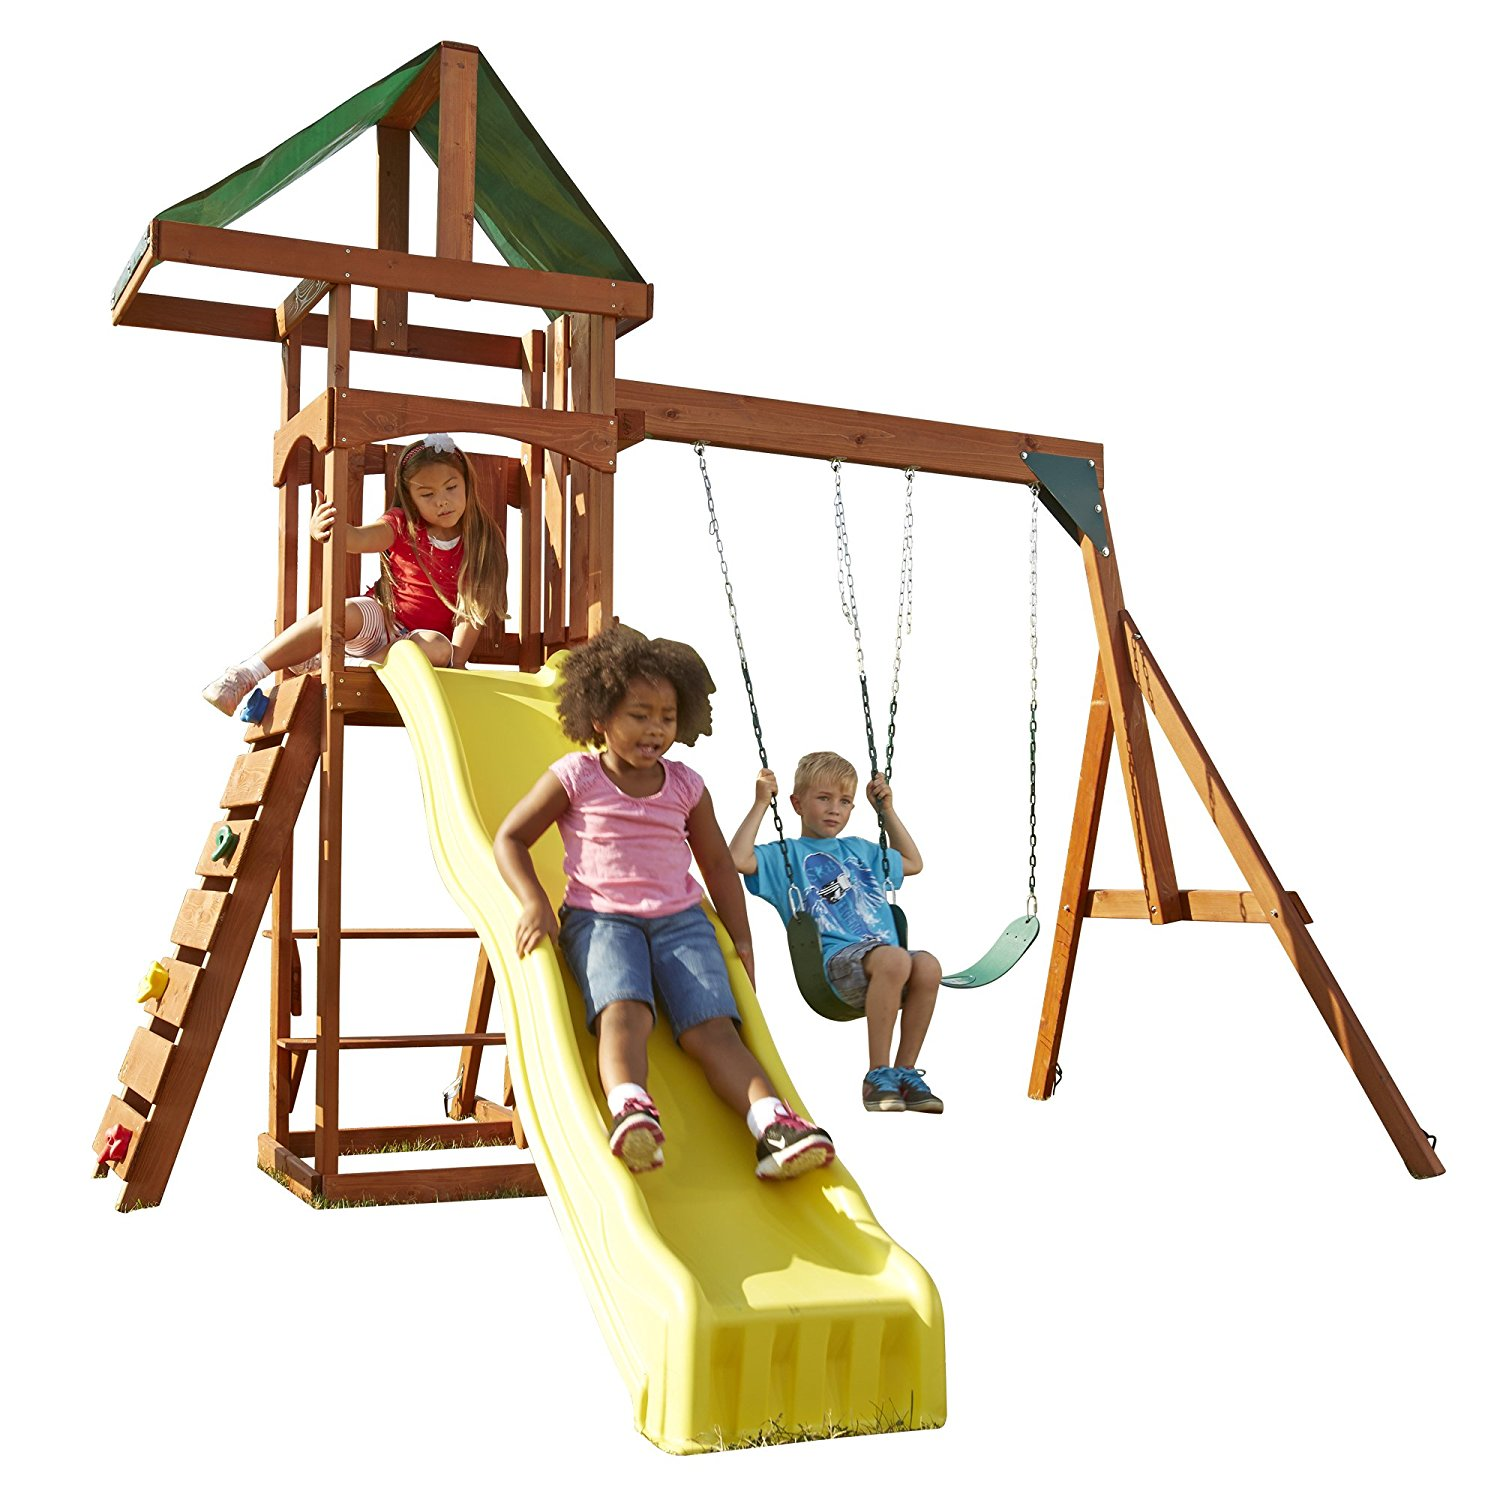 Swing-N-Slide Scrambler Playset With A Lifetime Warranty Against Cracks And Breaks